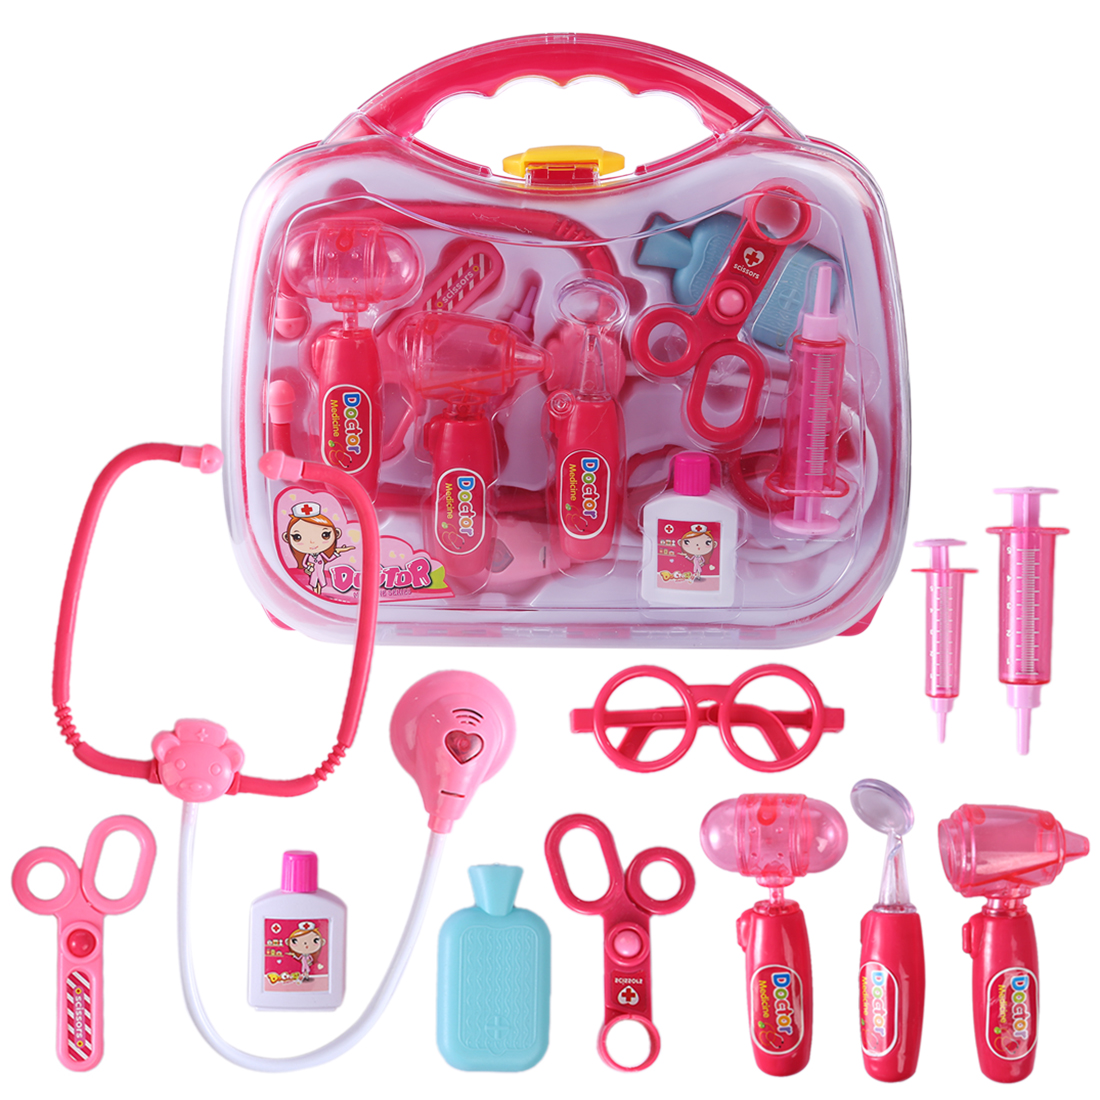 BOYS GIRLS CHILDRENS ROLE PLAY DOCTOR TOY TOOL SET IN HARD CARRY CASE WITH DRILL